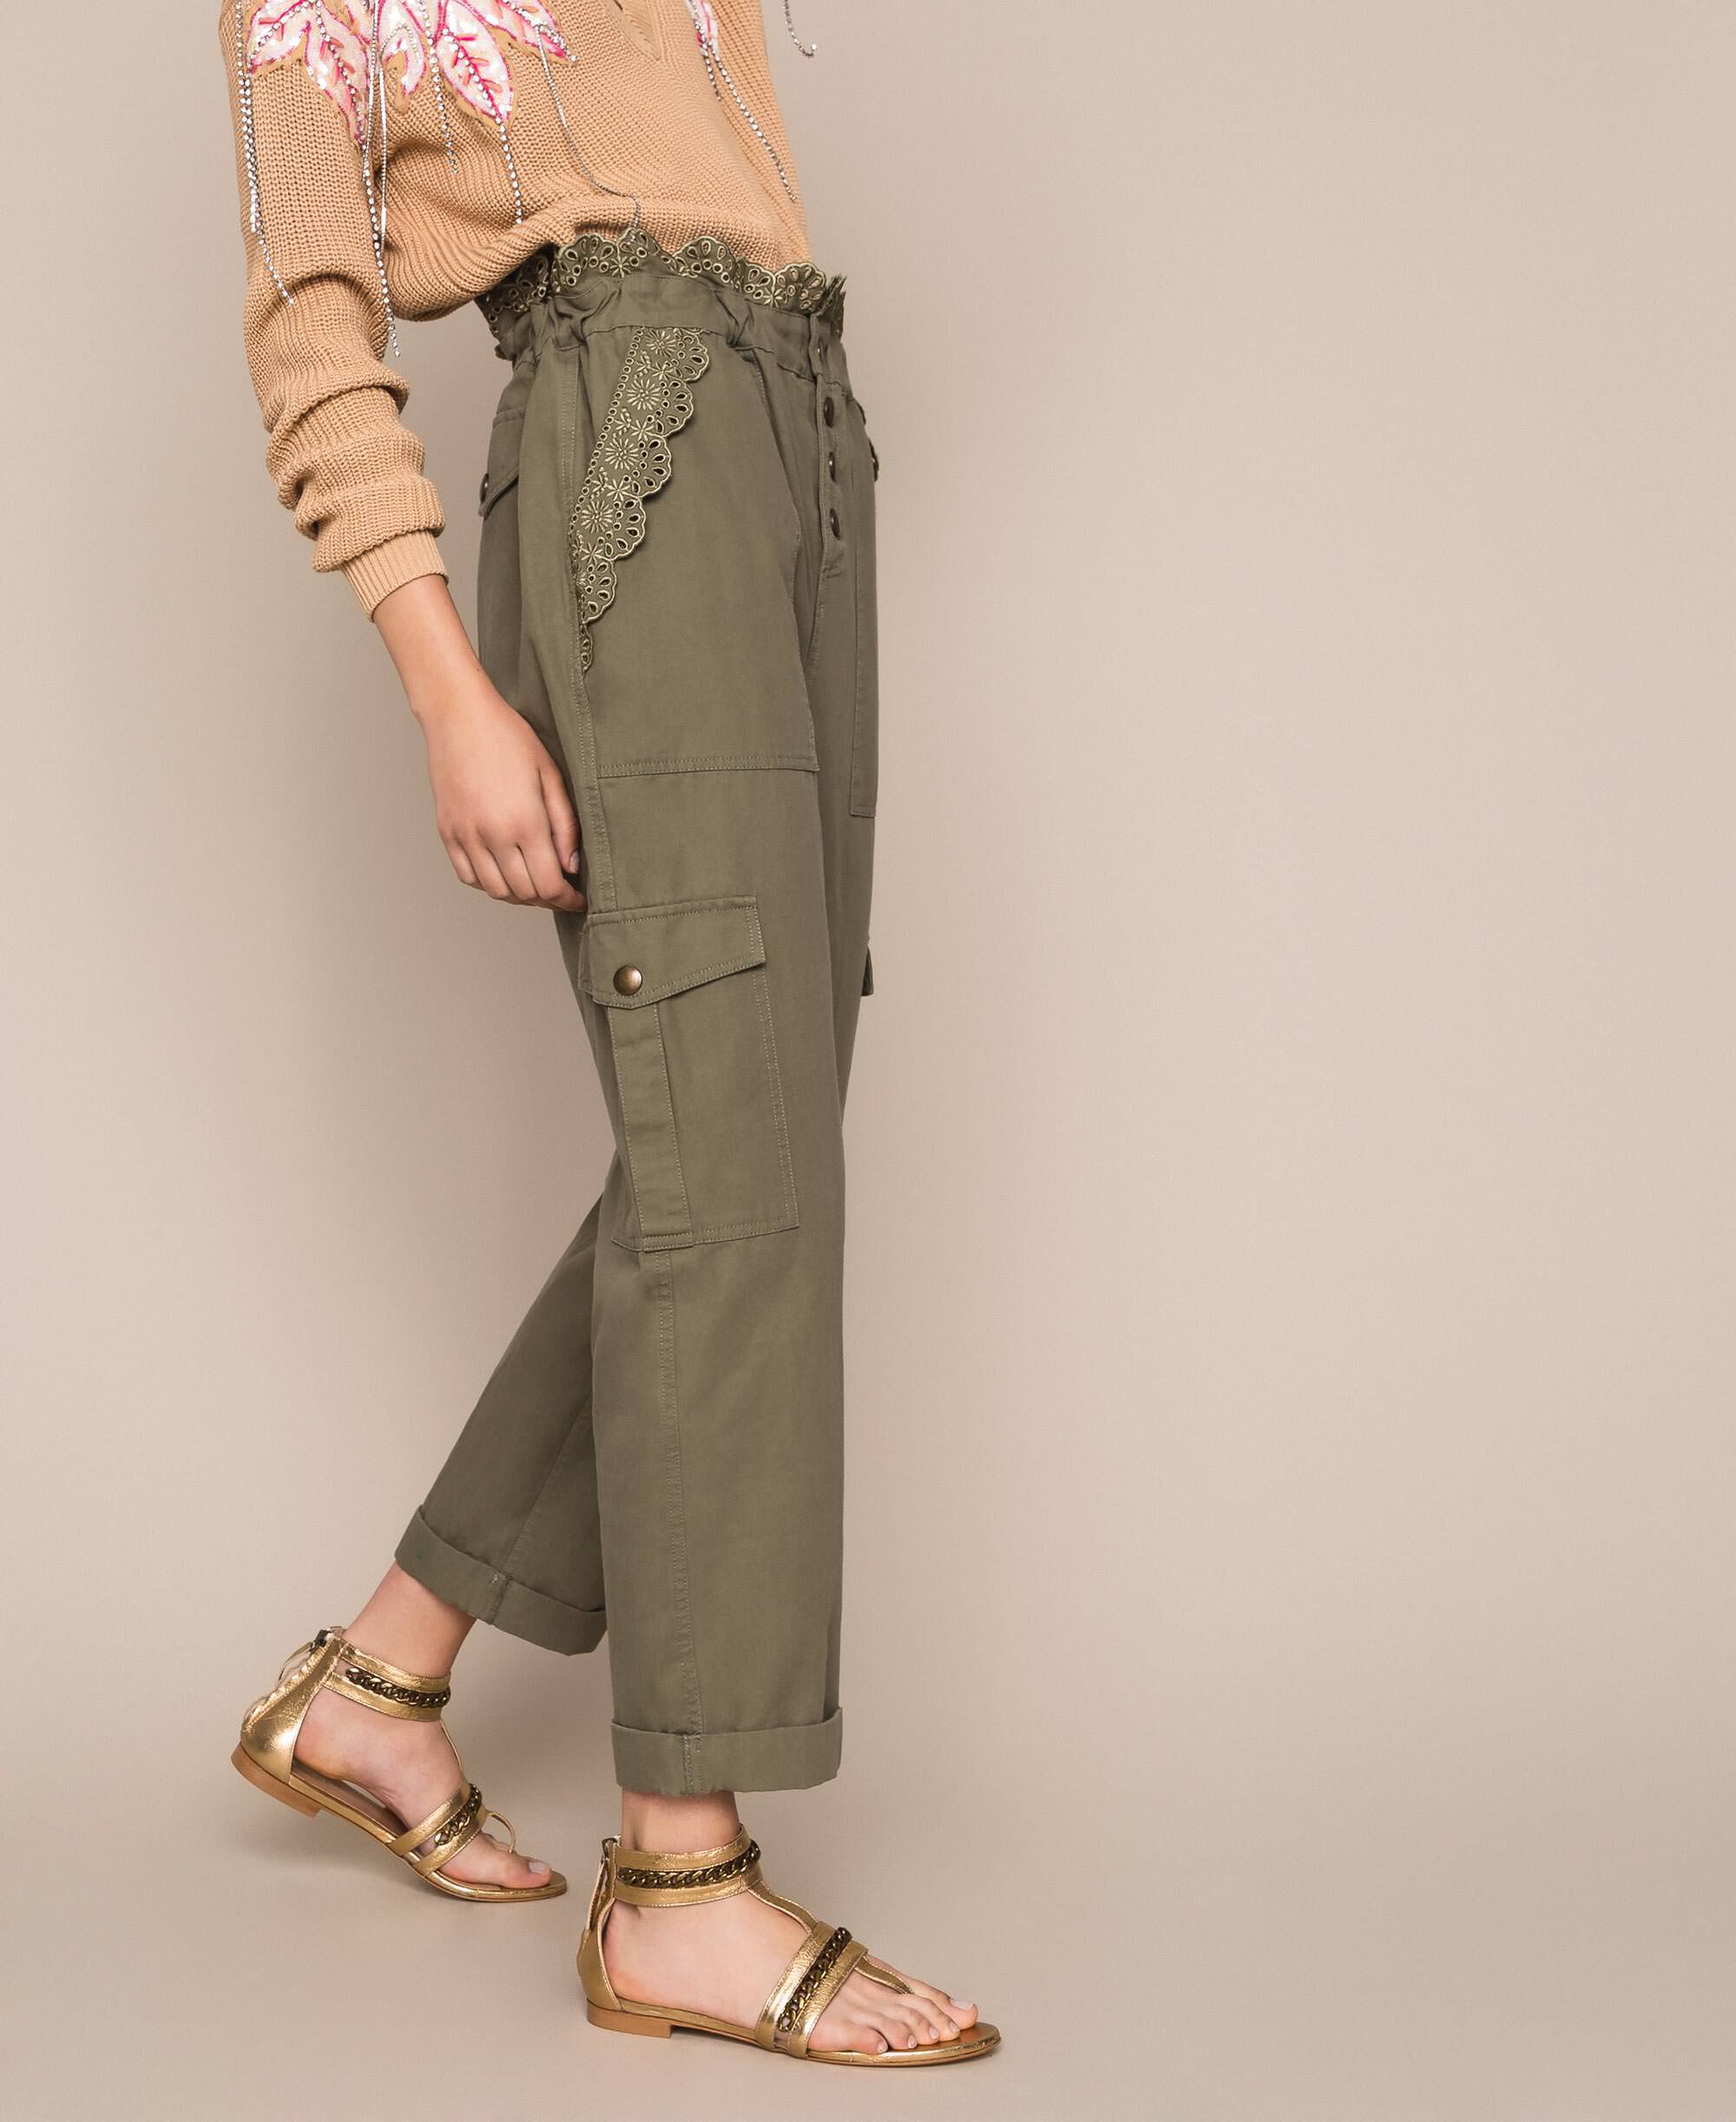 Ladies Pants  Cotton Elasticated Embroidered Anglaise Fashion Trousers